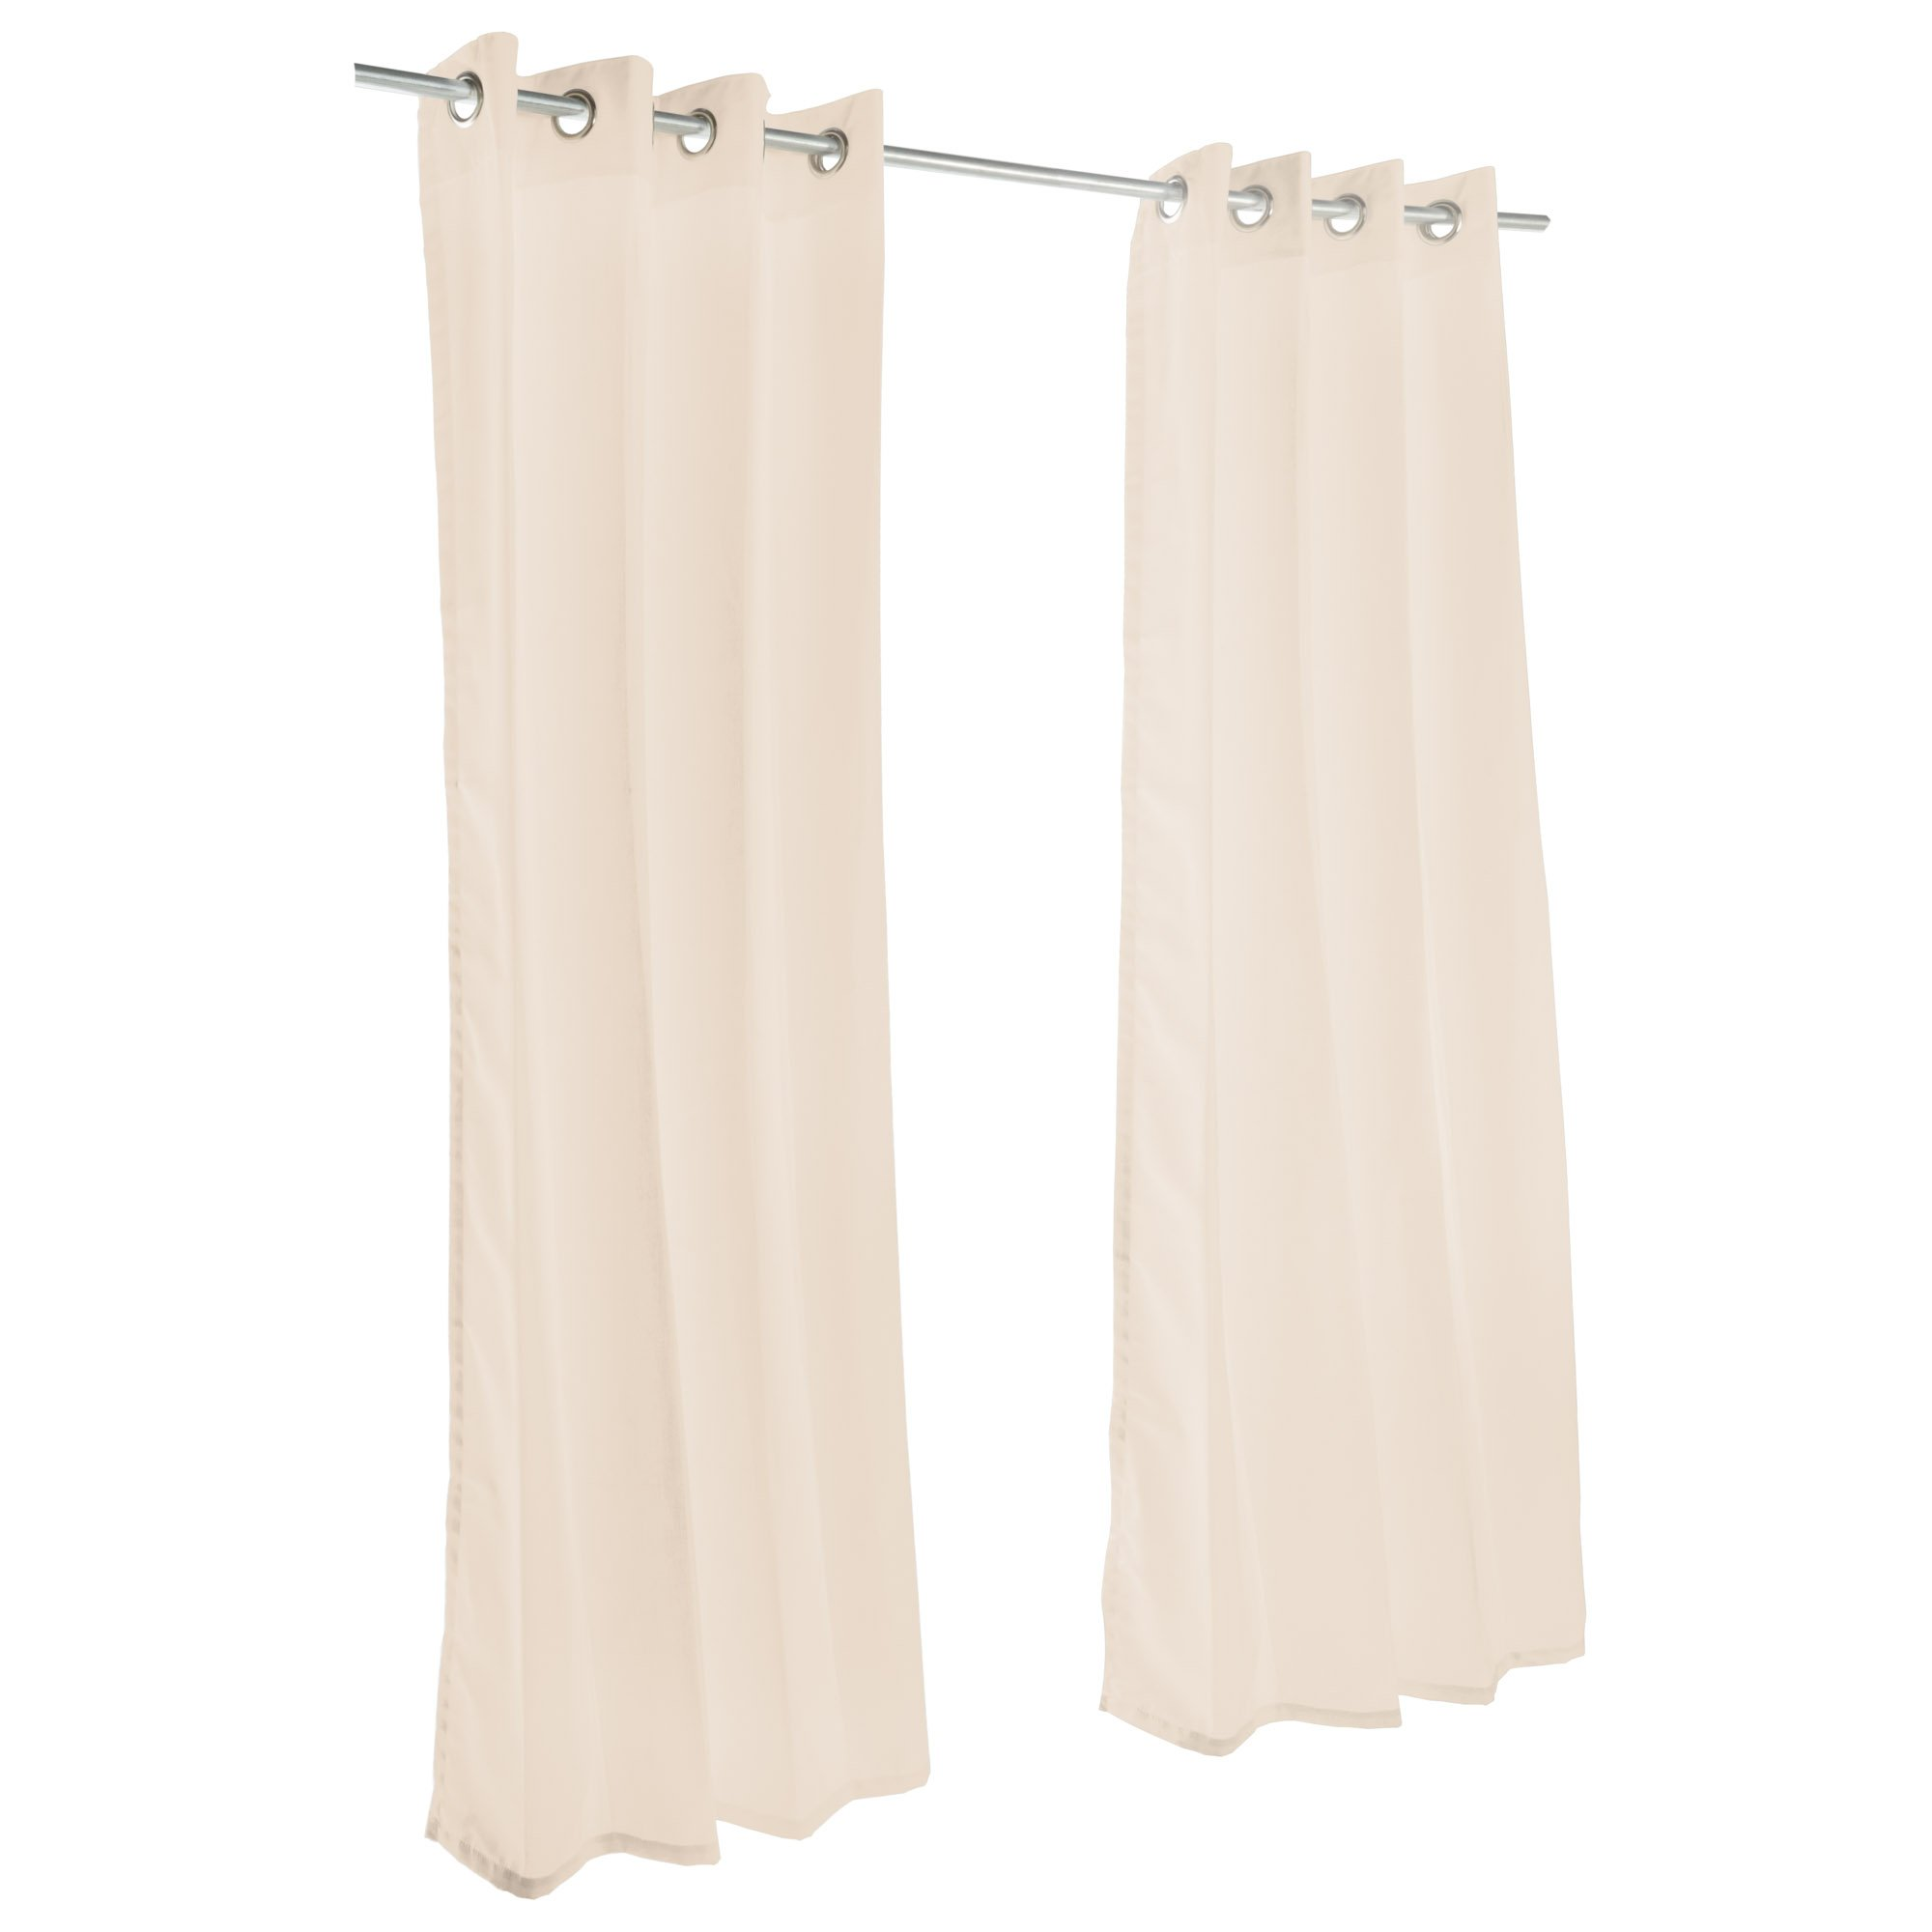 Sunbrella Outdoor Curtain With Grommets By Hatteras Outdoors - 52 1/2 X 84 Inch - Antique Beige by Hatteras Outdoors